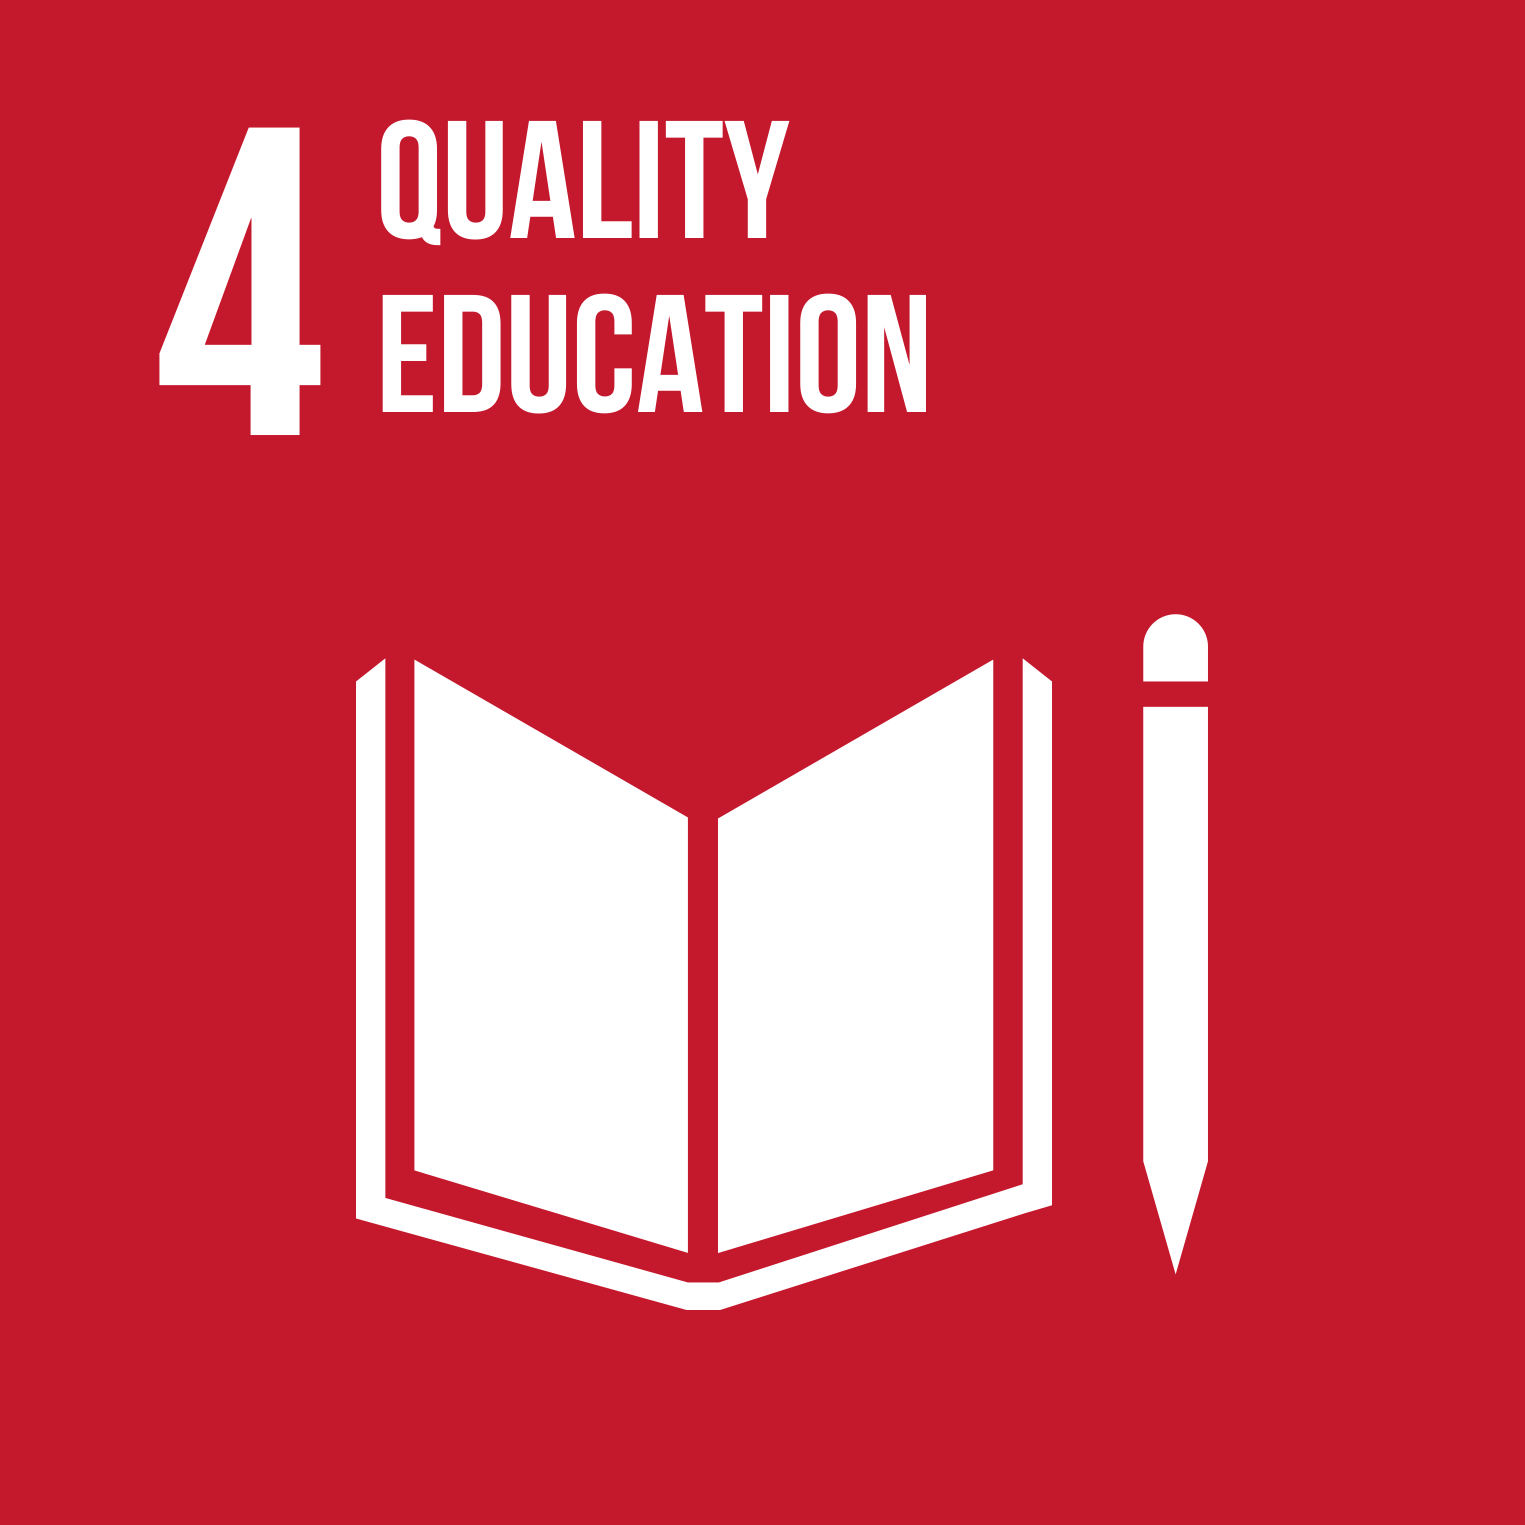 Goal 4 - Quality eduscation